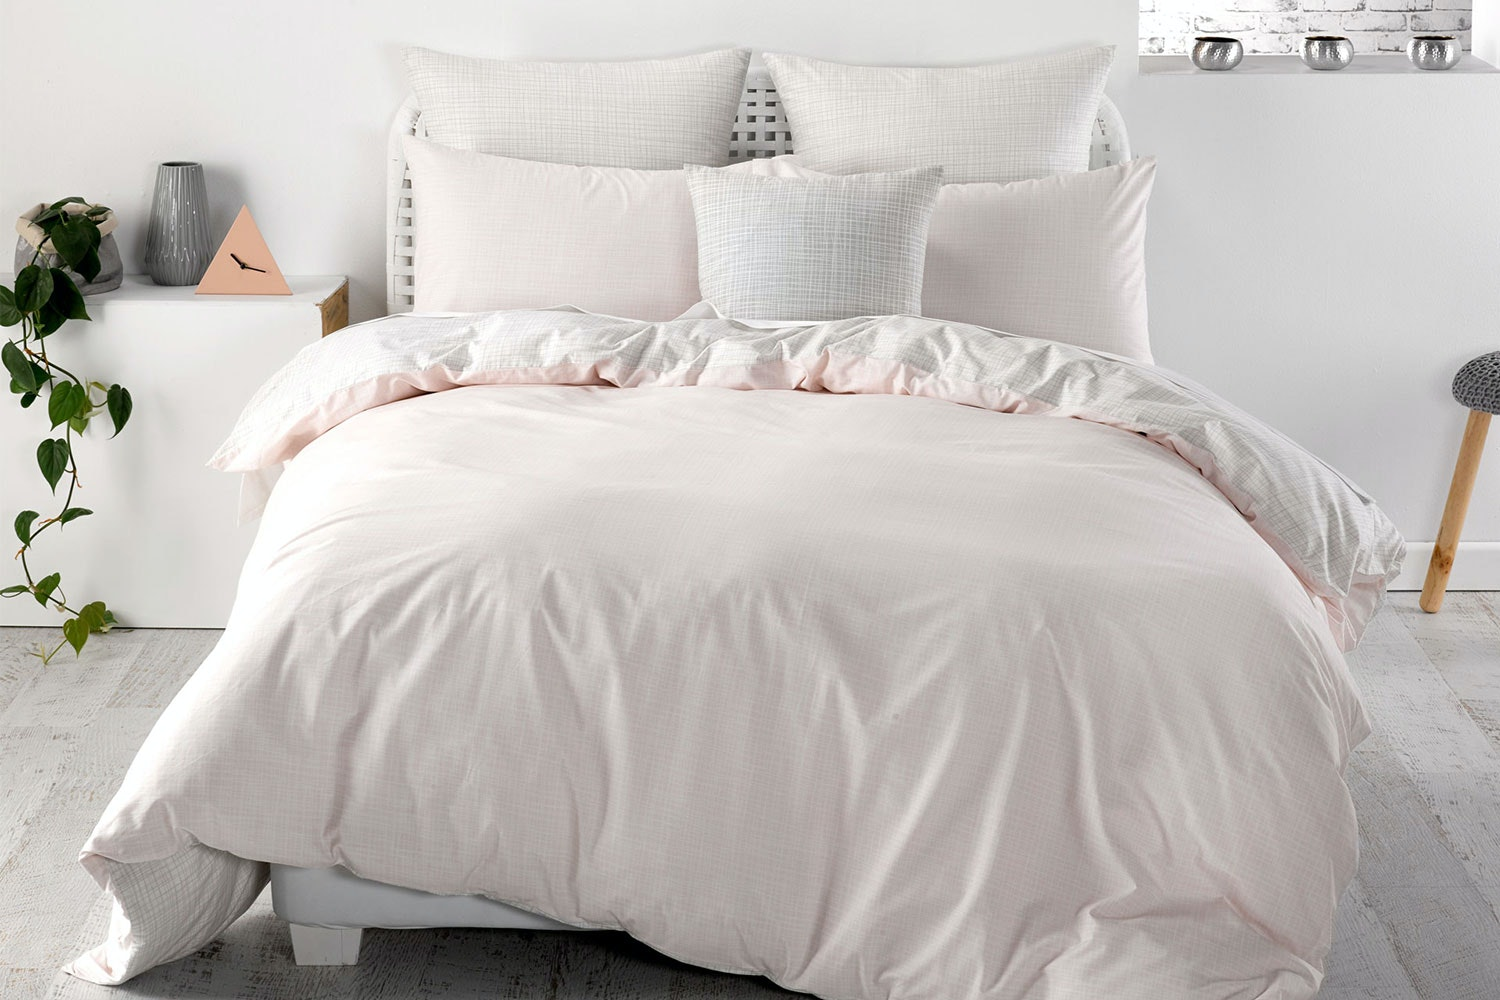 Meiko Pink Duvet Cover Set by Nu Edition